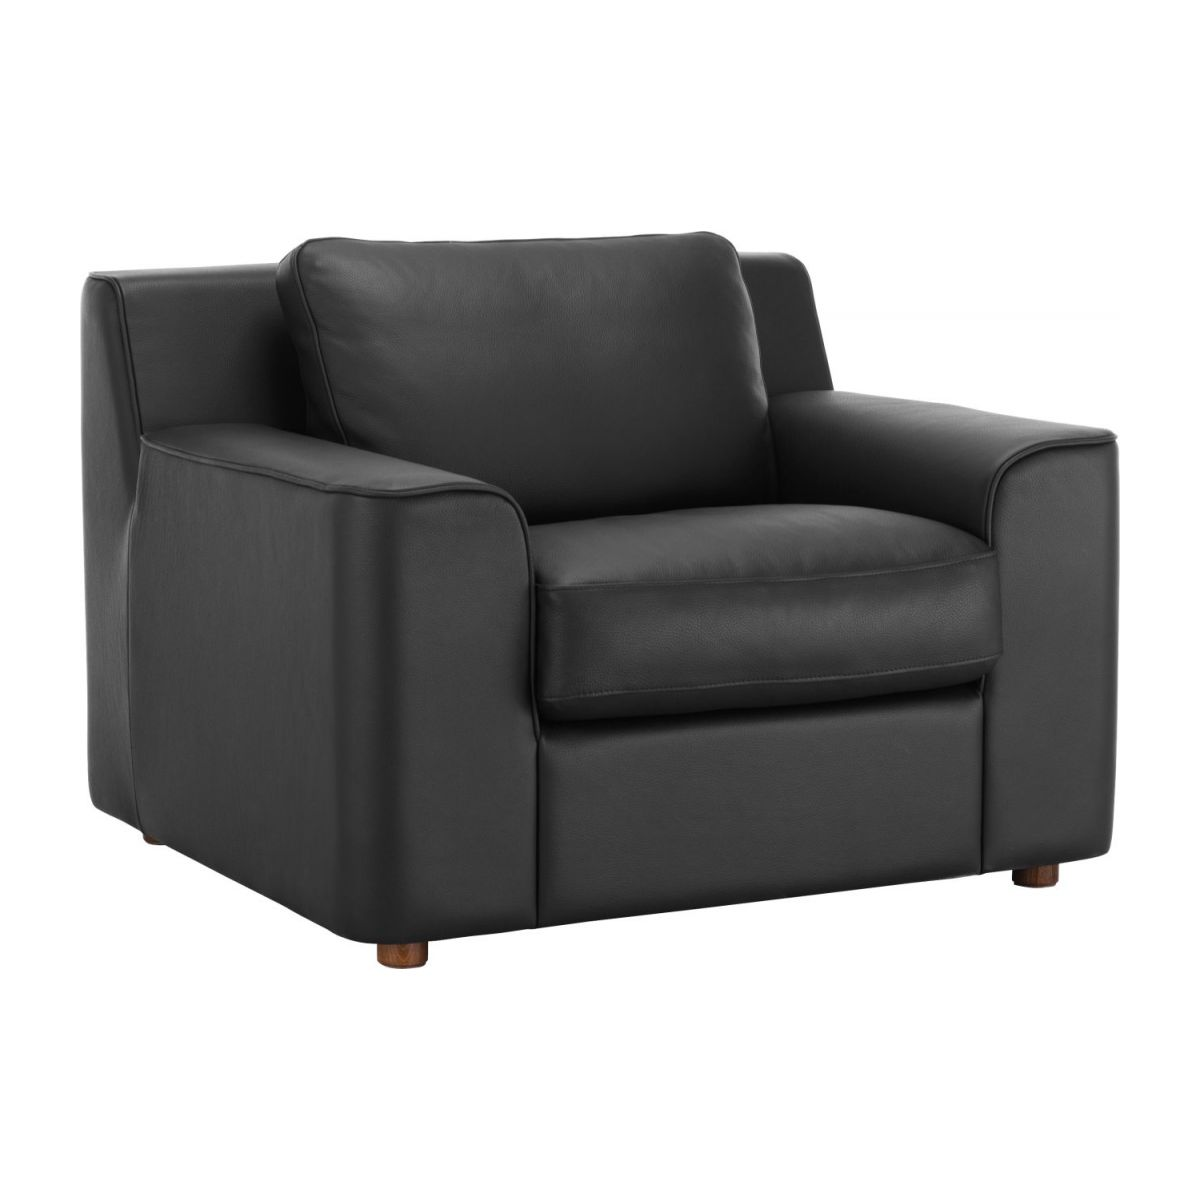 finn fauteuils fauteuil noir cuir habitat. Black Bedroom Furniture Sets. Home Design Ideas